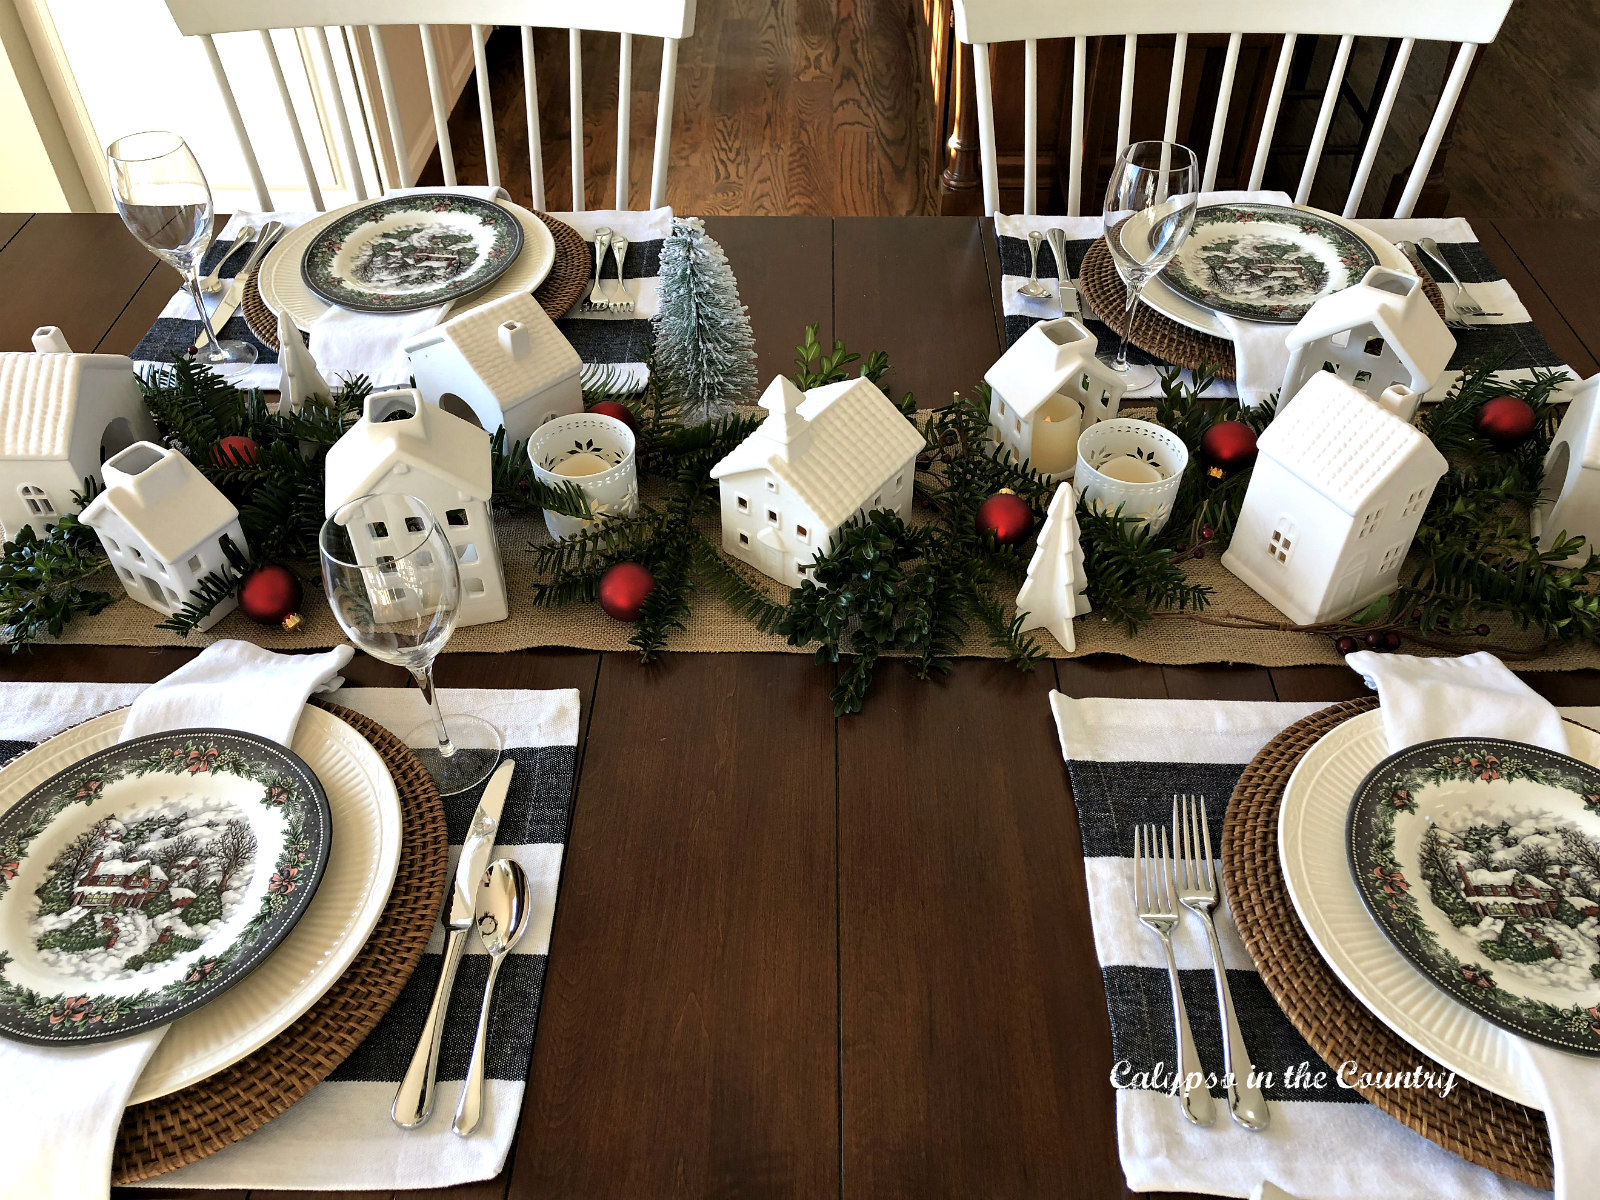 Christmas Table with White Ceramic Village